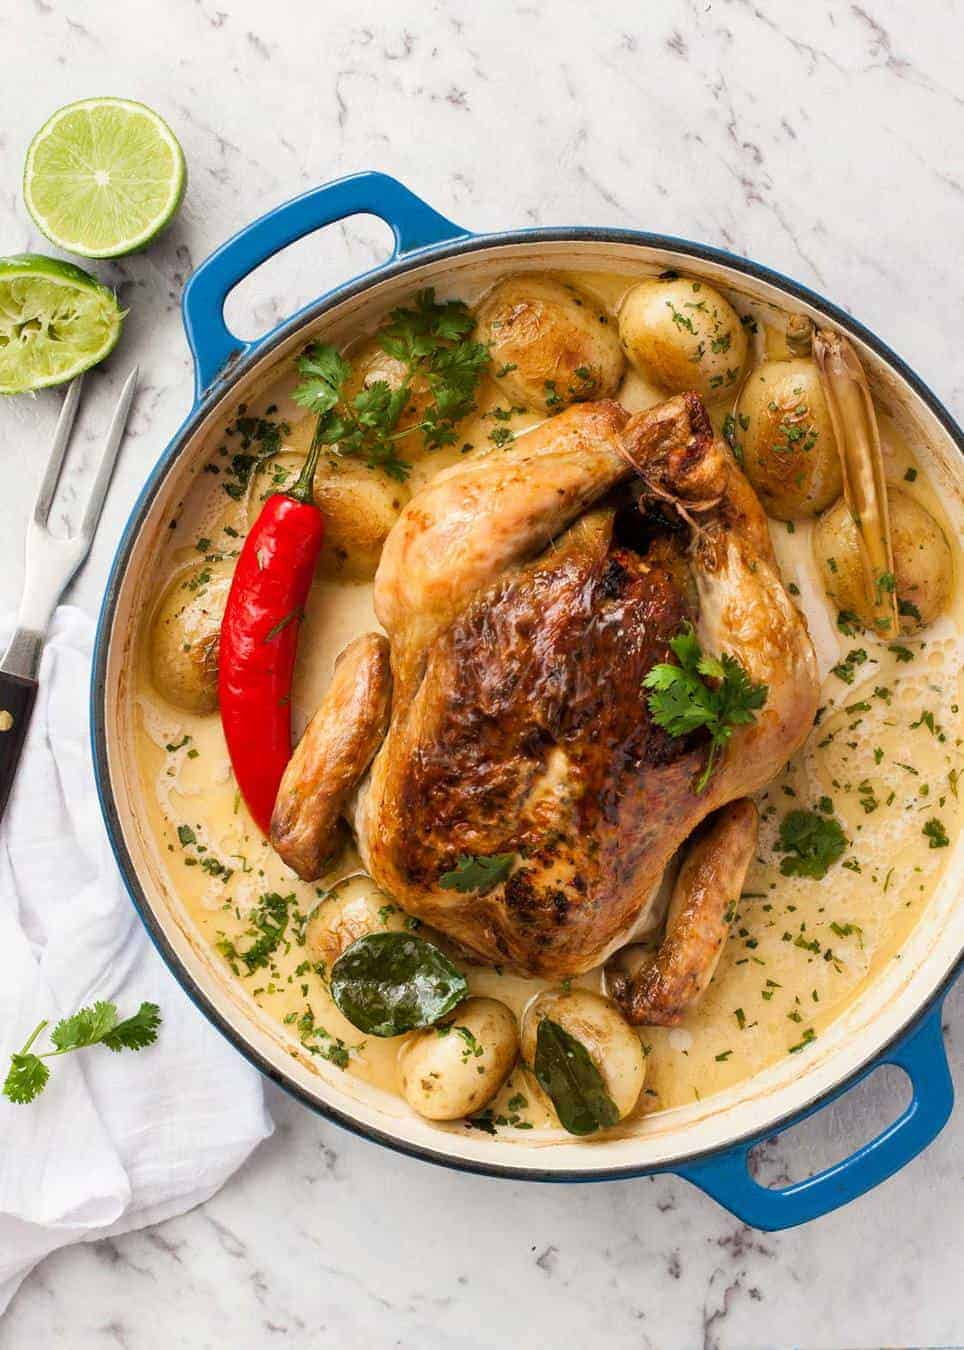 Jan 22,  · Using stock takes extra time if you make it yourself, or extra money if you buy it, and I think you get all the flavor you need by simply having the chicken, vegetables, and herbs simmer in water (which is the base of a good stock, anyway).